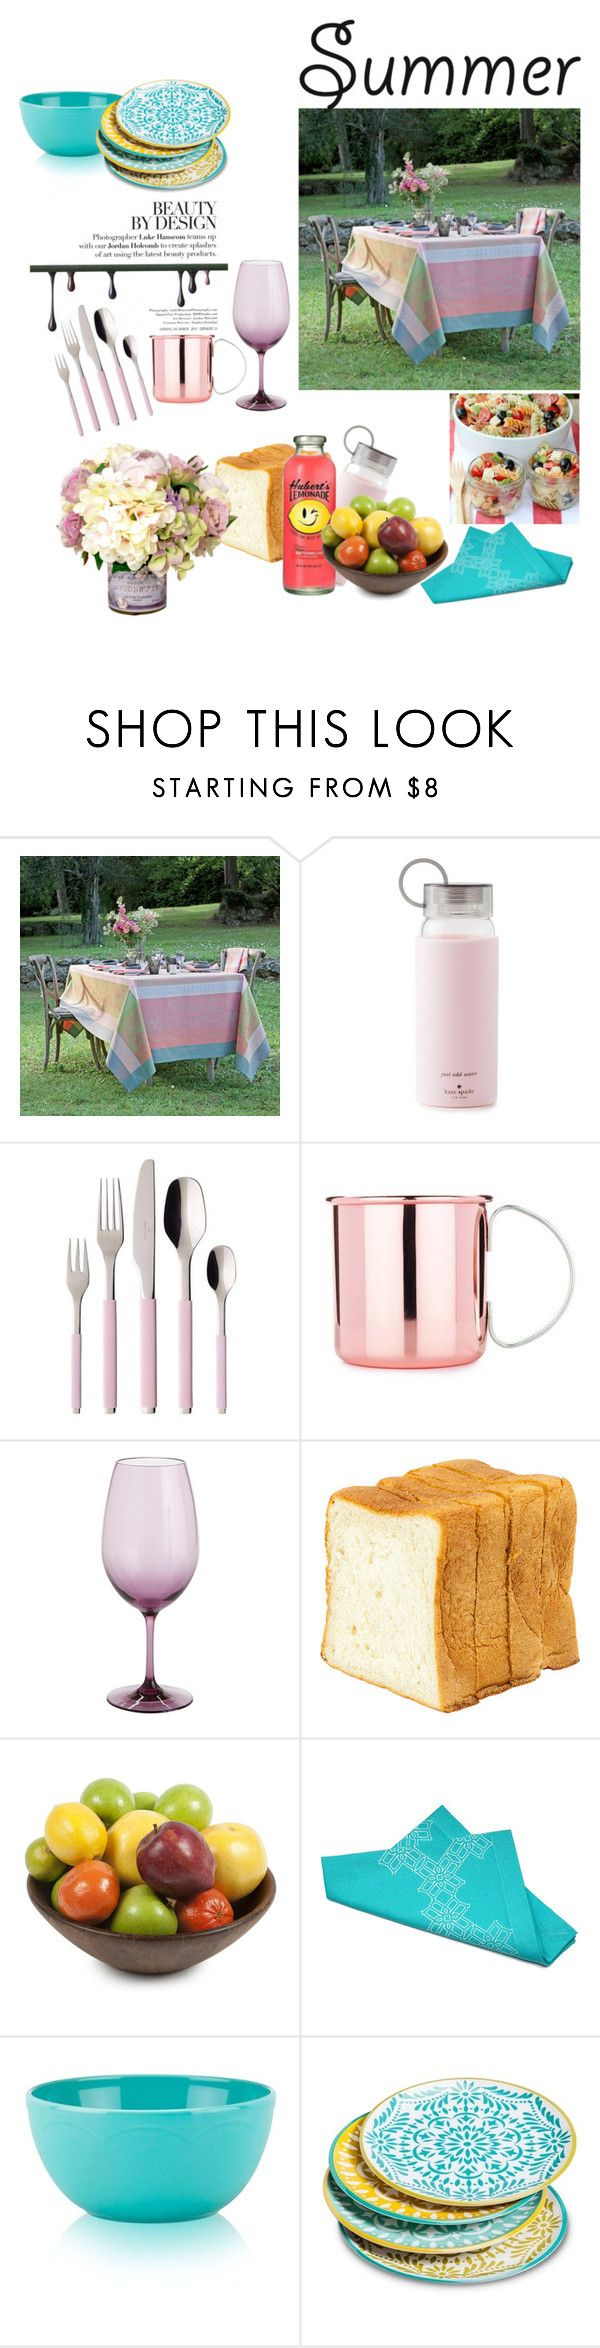 """""""summer dining"""" by zahrohusna on Polyvore featuring interior, interiors, interior design, home, home decor, interior decorating, Kate Spade, Villeroy & Boch, Pier 1 Imports and Dot & Bo"""